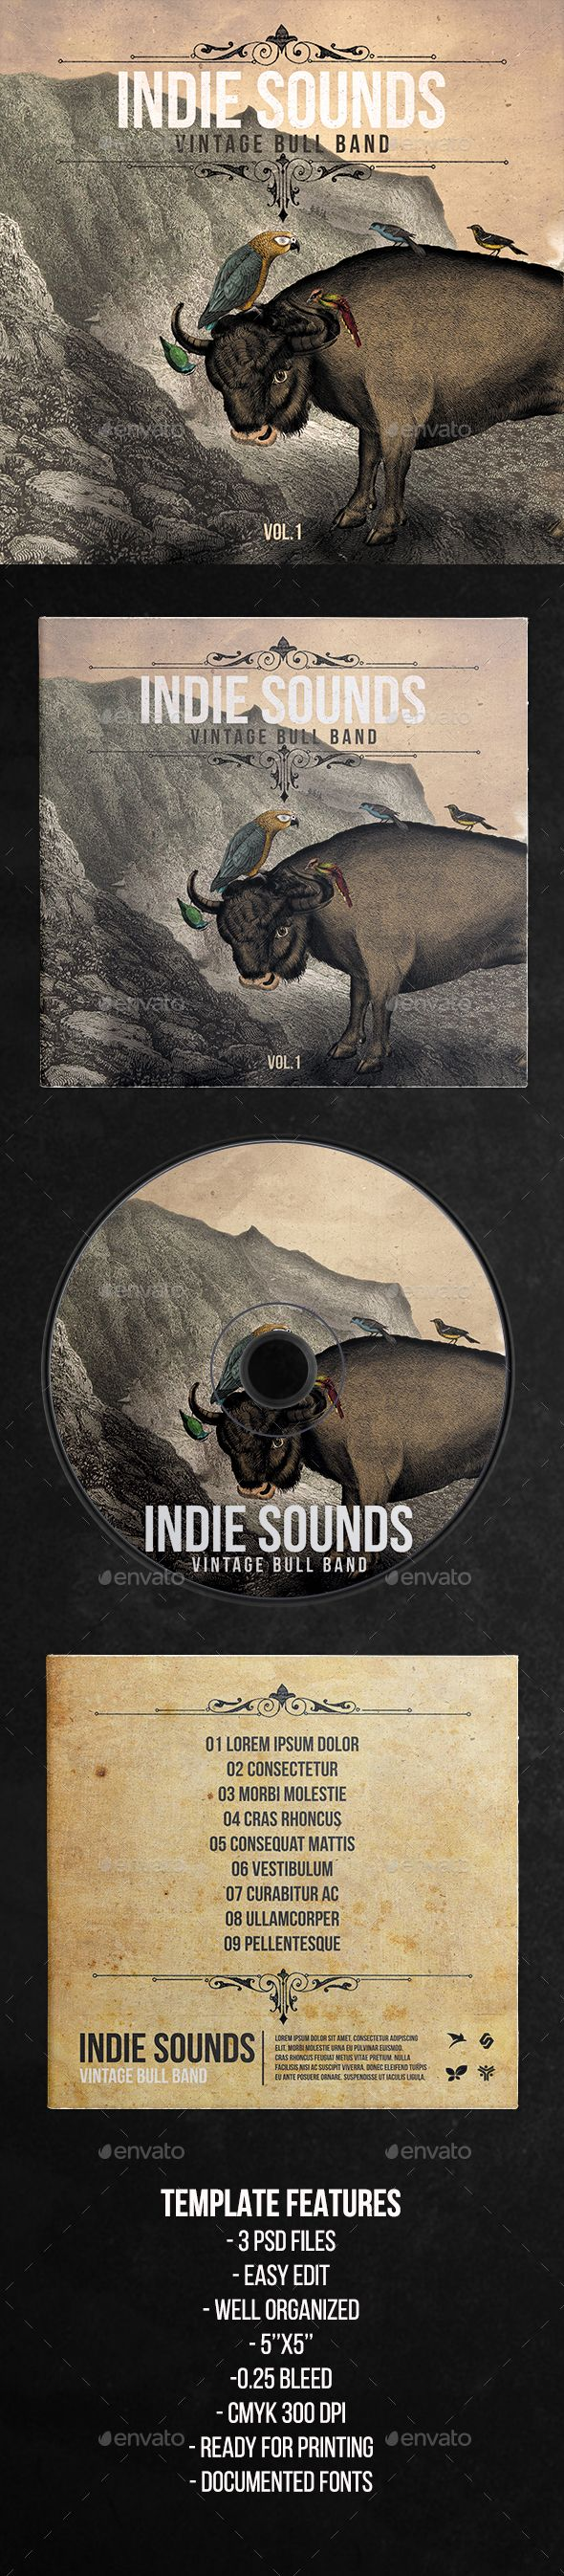 Cd box template download free vector art stock graphics amp images - Indie Sounds Music Cd Cover Artwork Template